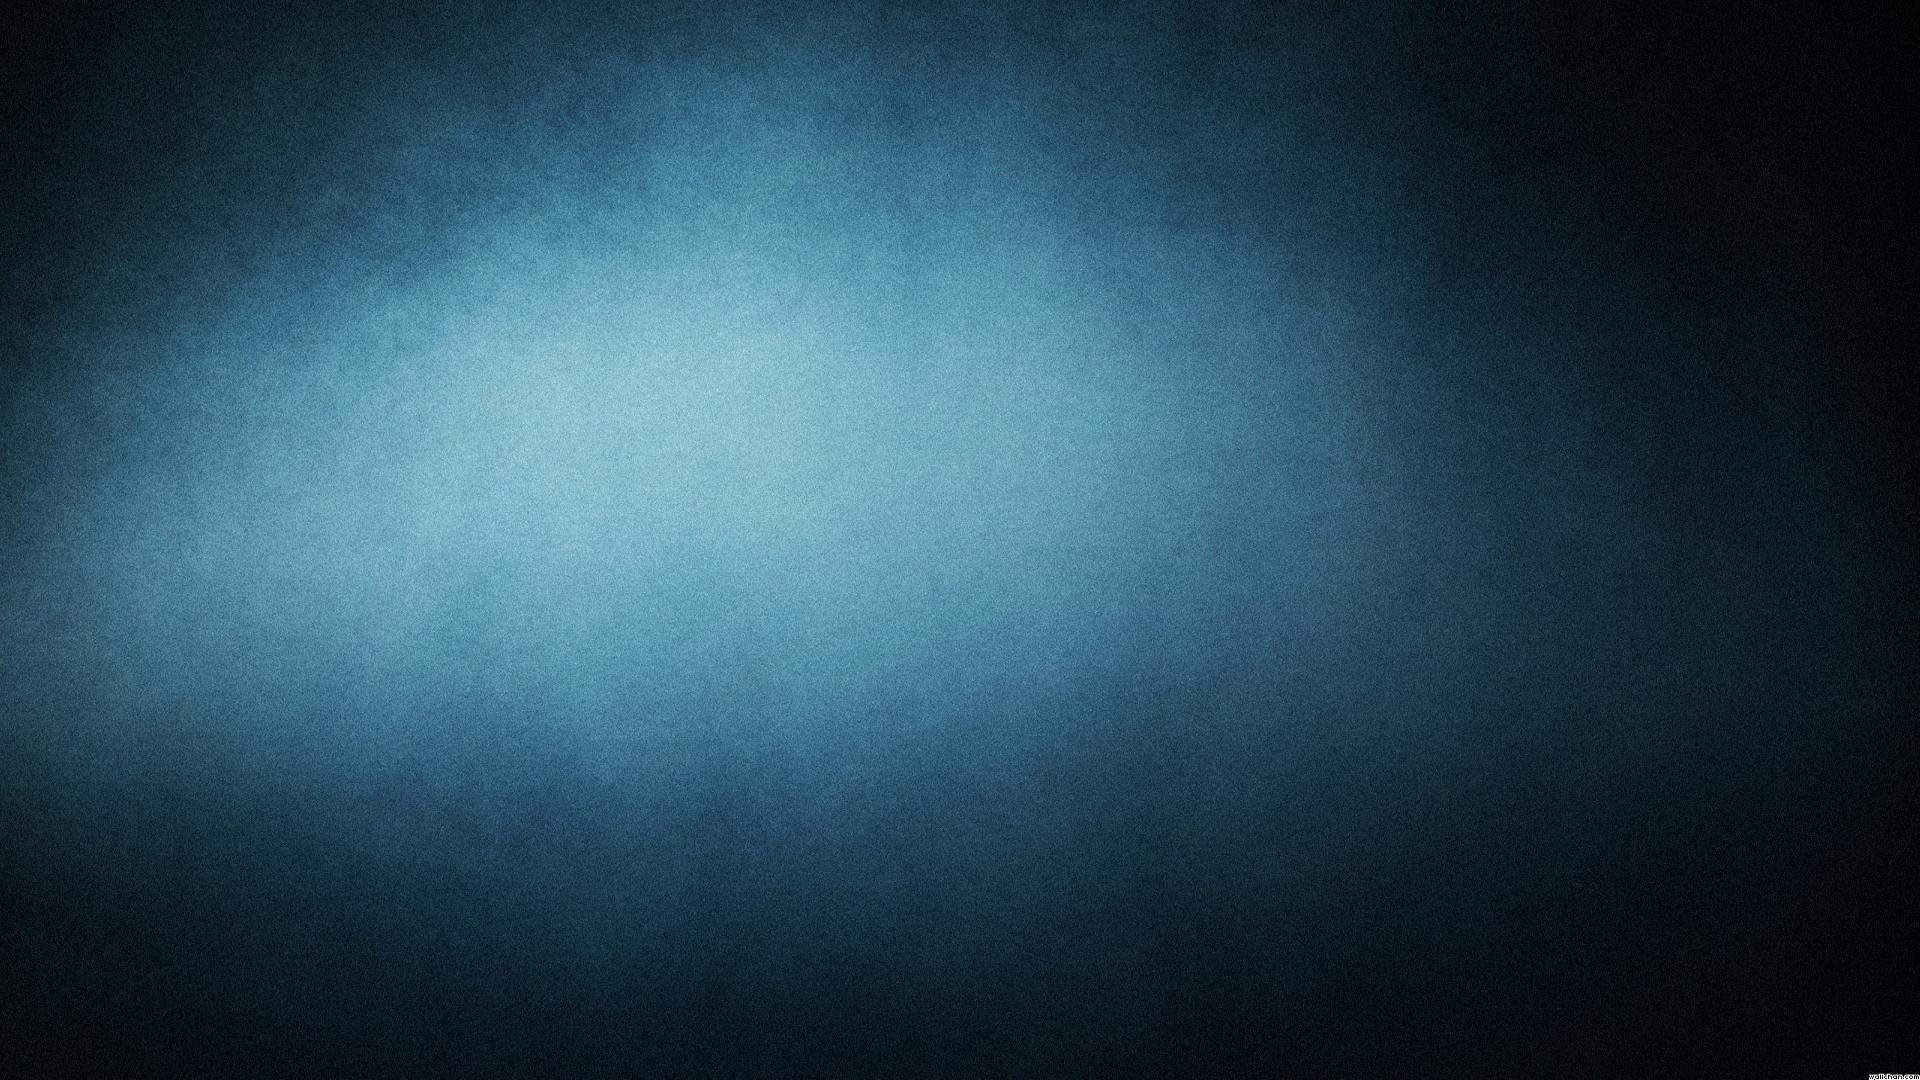 1920x1080 Plain Wallpapers (50 Wallpapers)